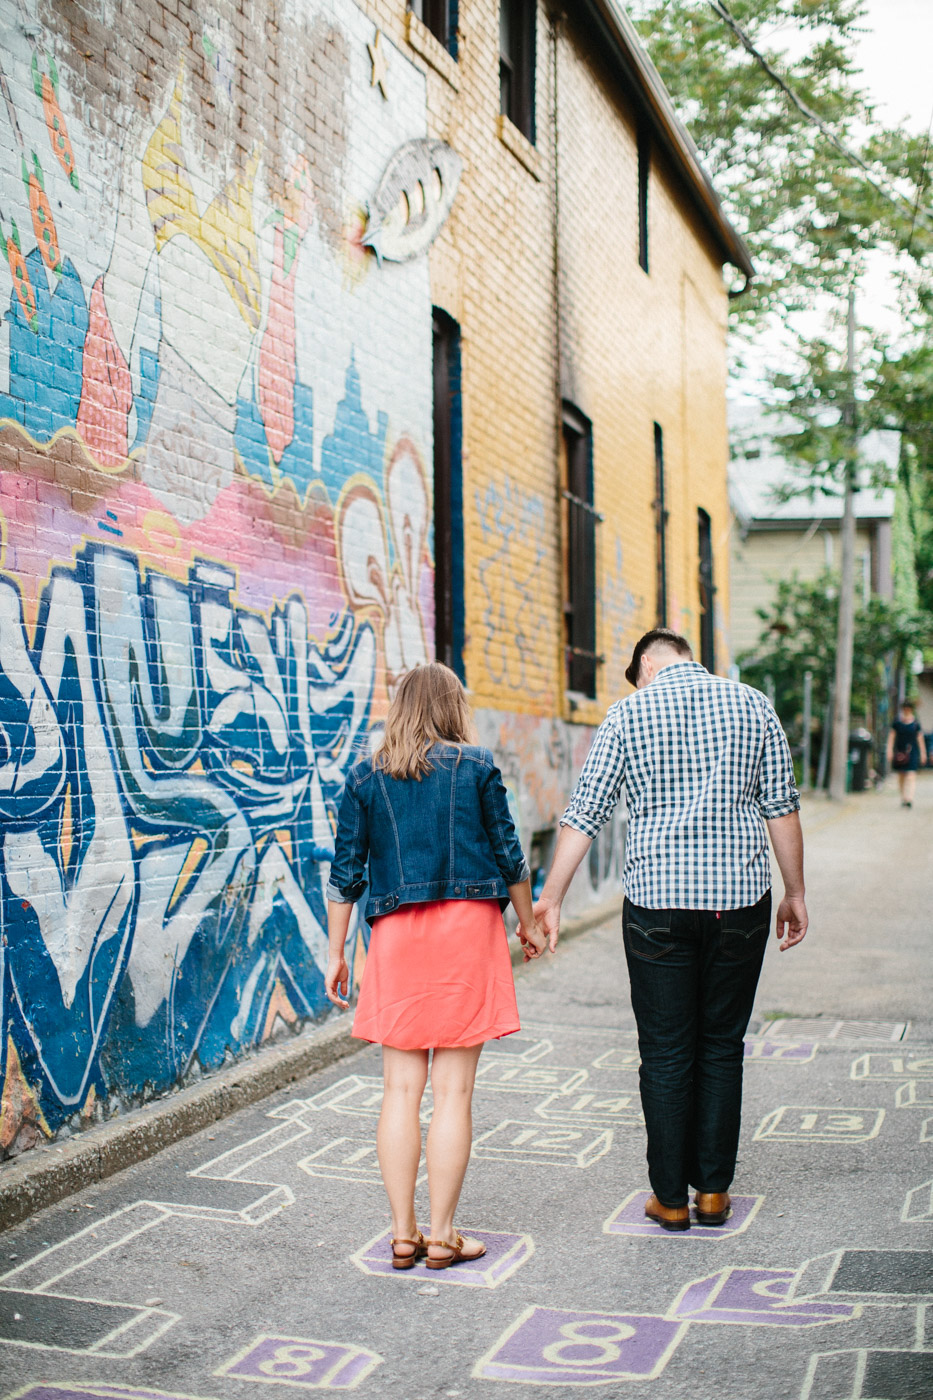 toronto_wedding_photographer_engagement_photography_tips-41.jpg